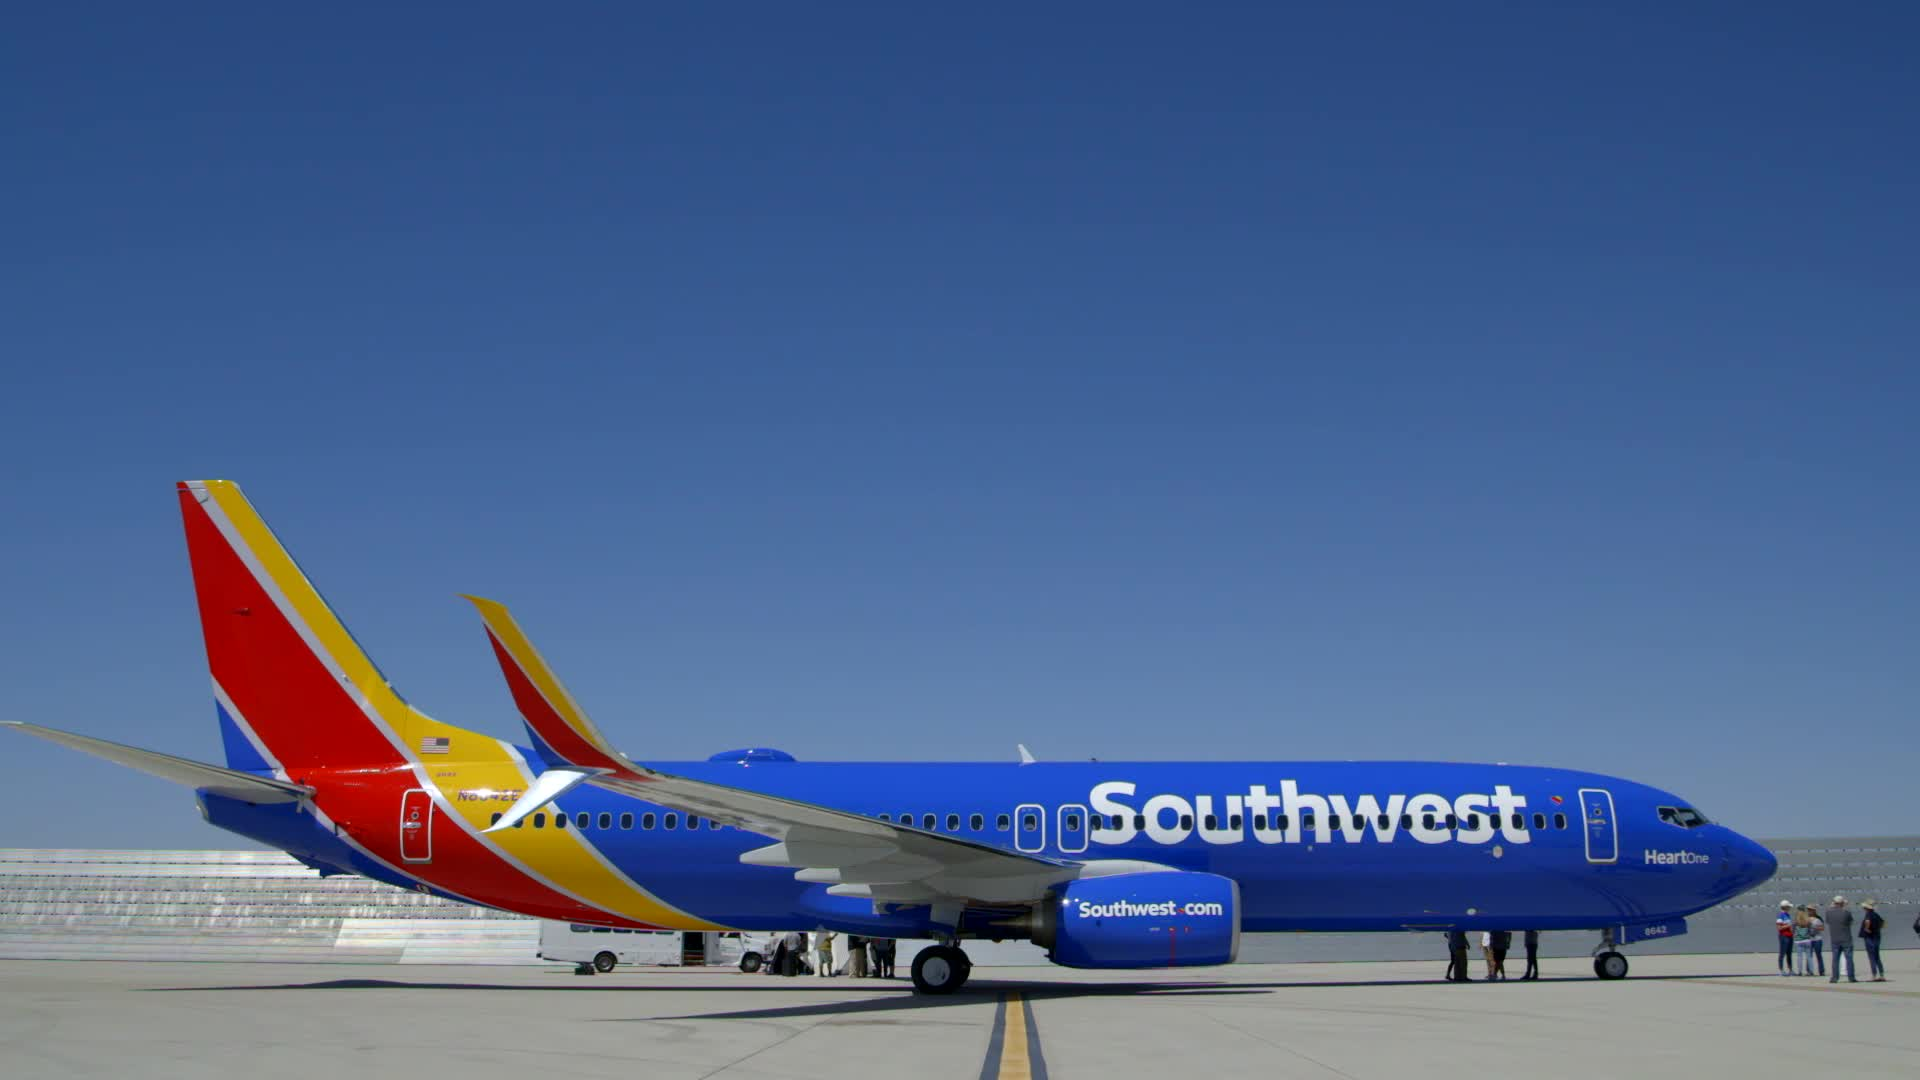 Download Southwest Airlines Wallpaper Gallery